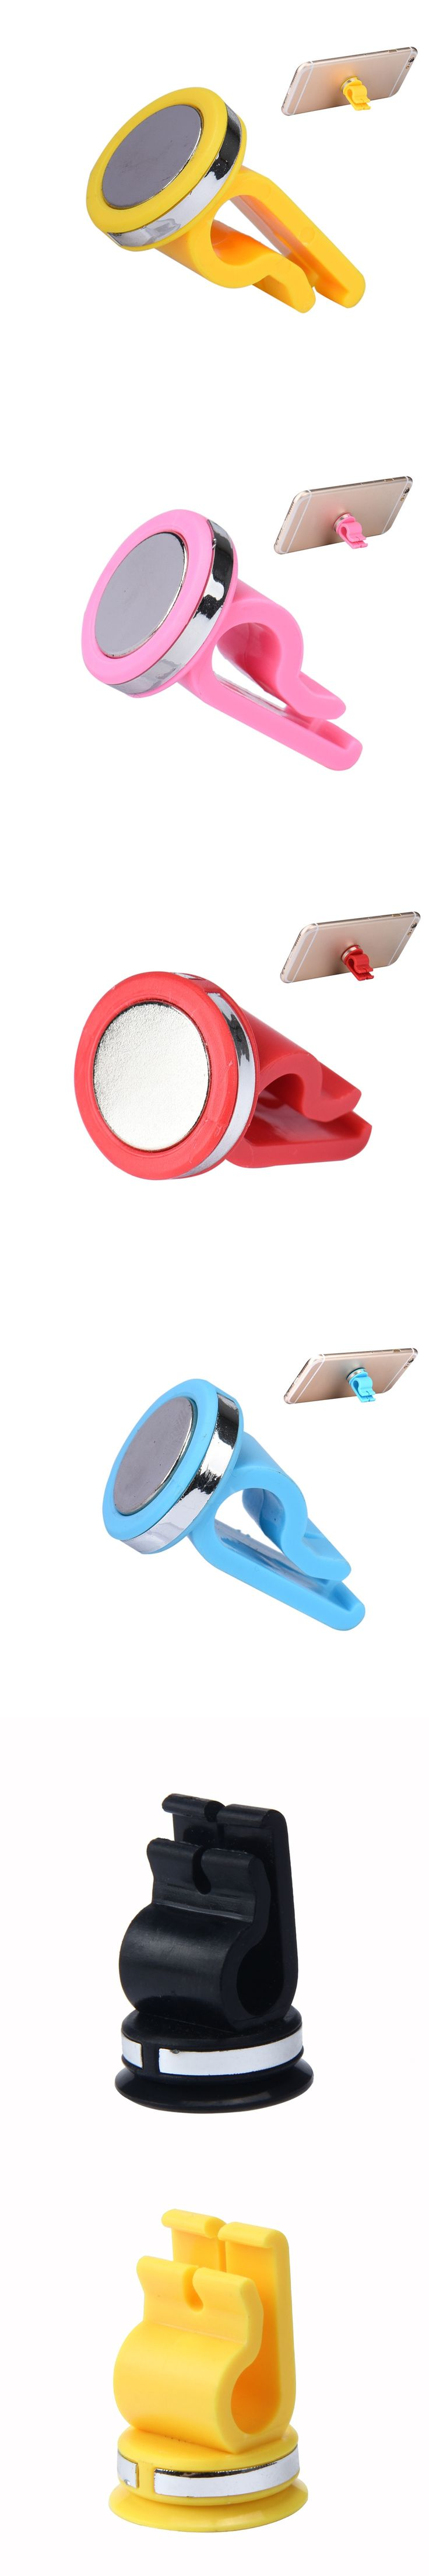 New Universal Car Air Vent Phone Holder Mount Stand Magnetic for iPhone Phone GPS Car Styling Accessories